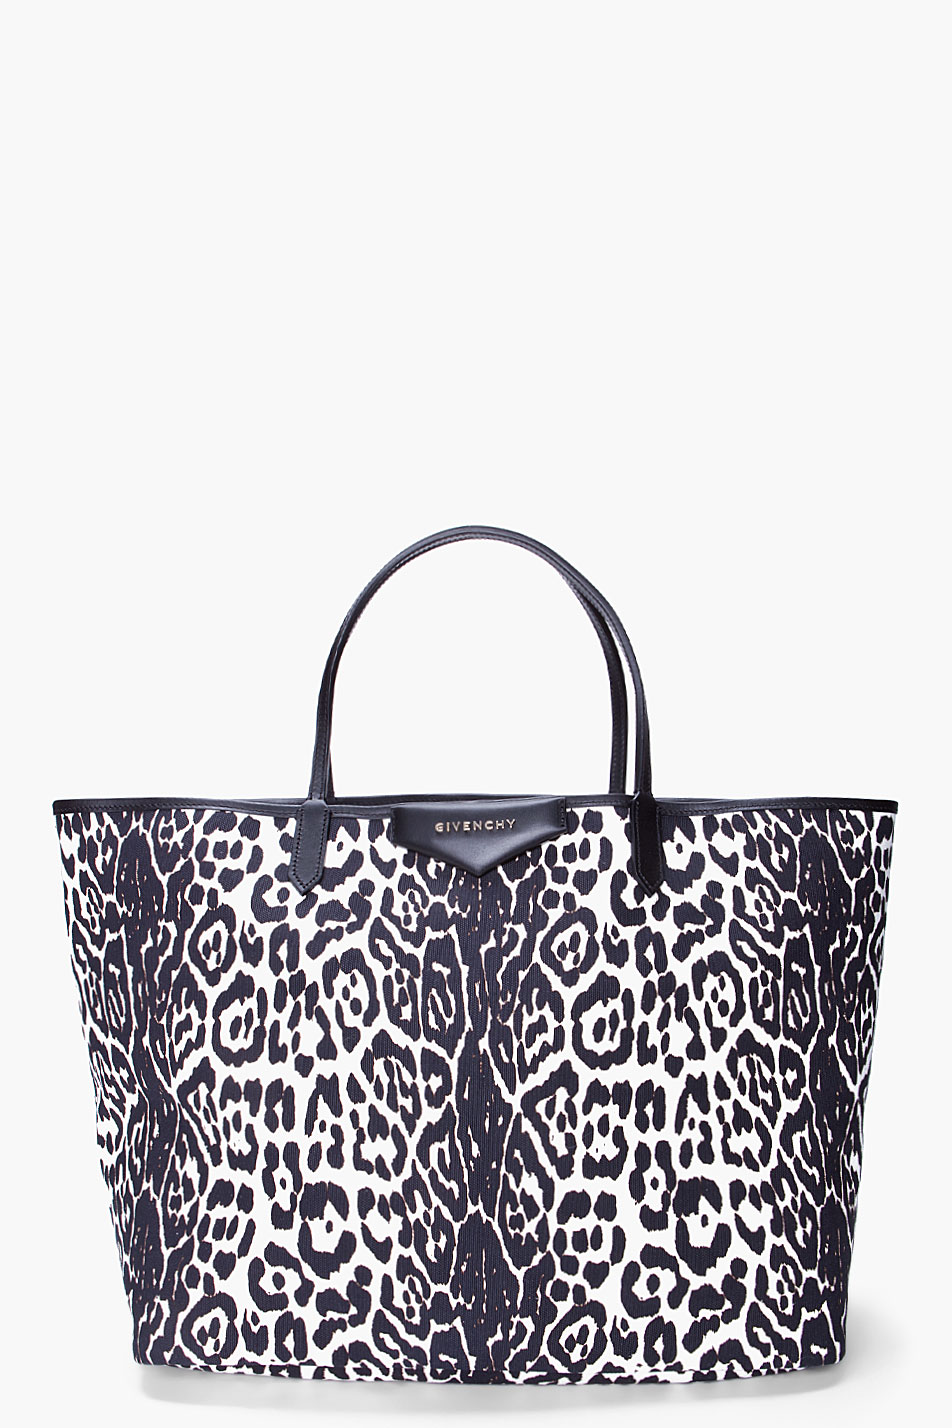 Lyst - Givenchy Leopard Print Tote b101f5a7bd